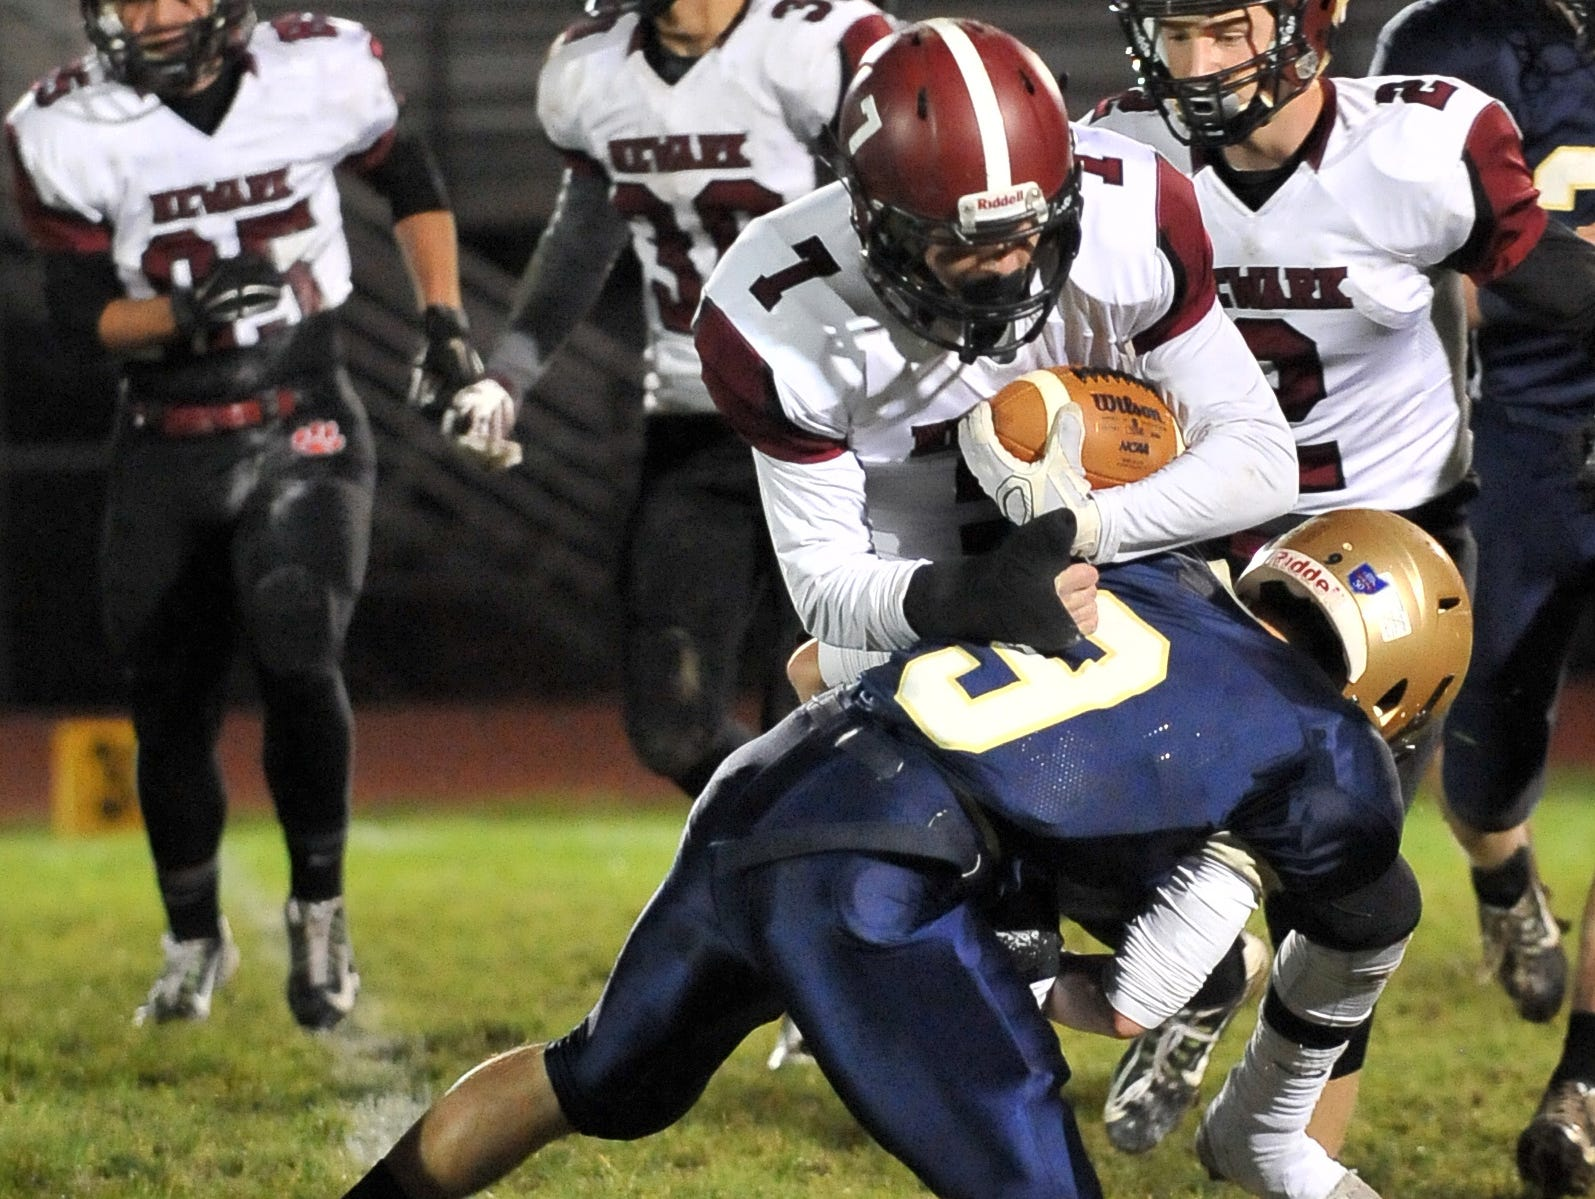 Newark's Doren Barrett is tackled by Lancaster's Ashton Walker during Friday night's game at Fulton Field in Lancaster. The Wildcats lost the game 38-7.